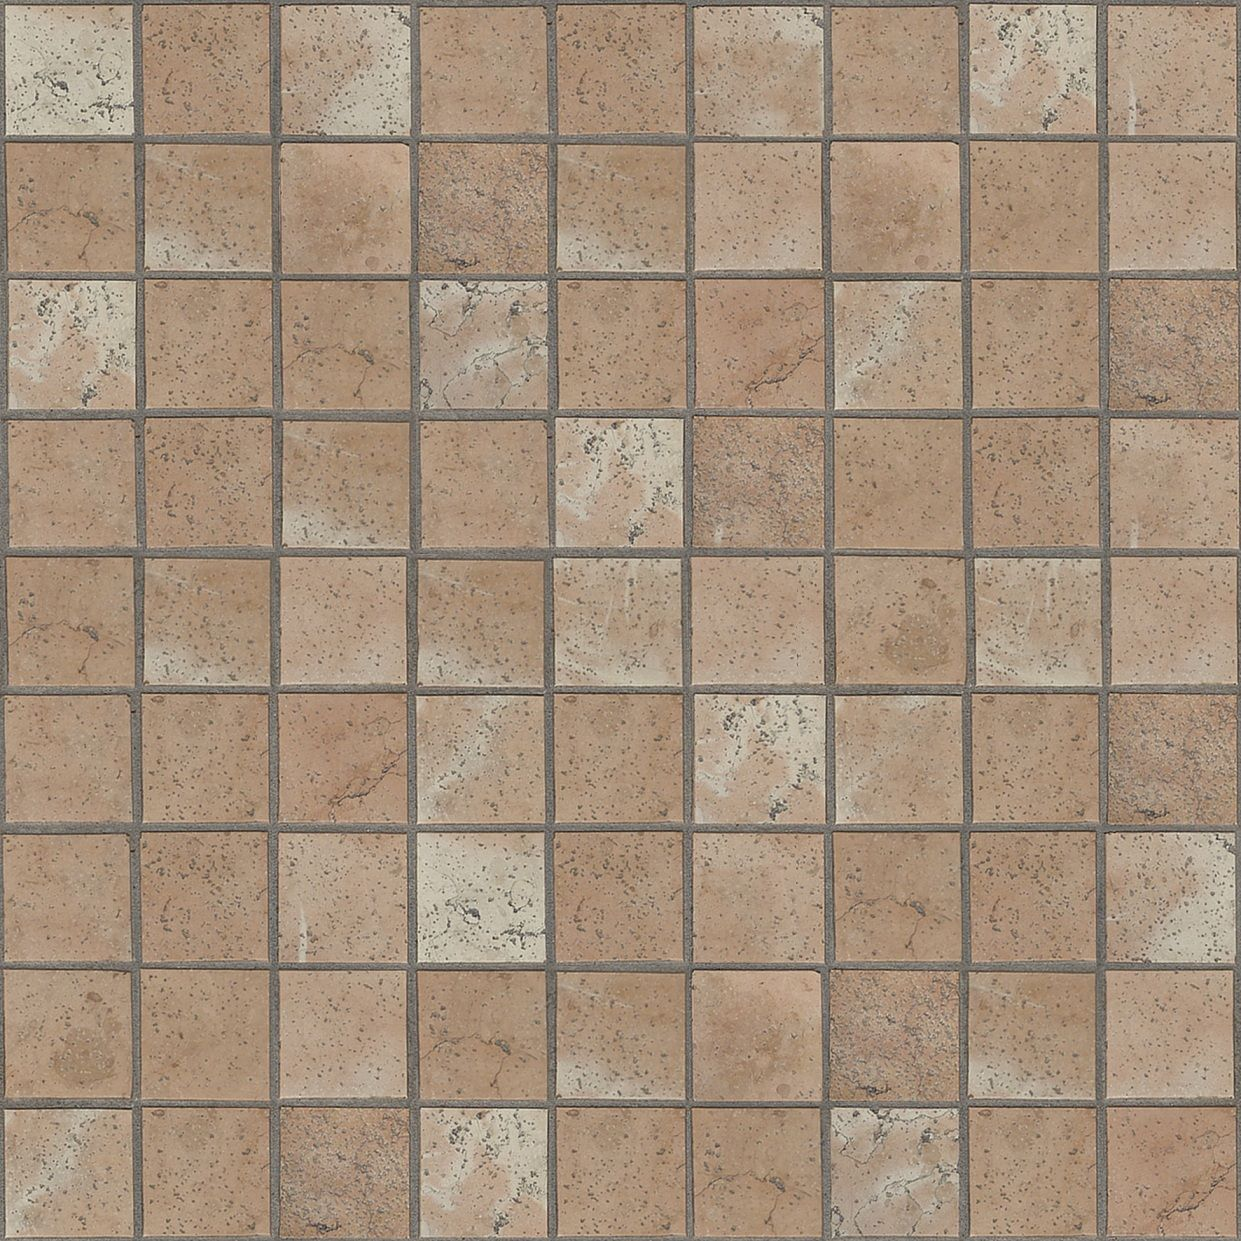 Kitchen Tile Texture Seamless bathroom floor tile texture seamless | stuff to buy | pinterest